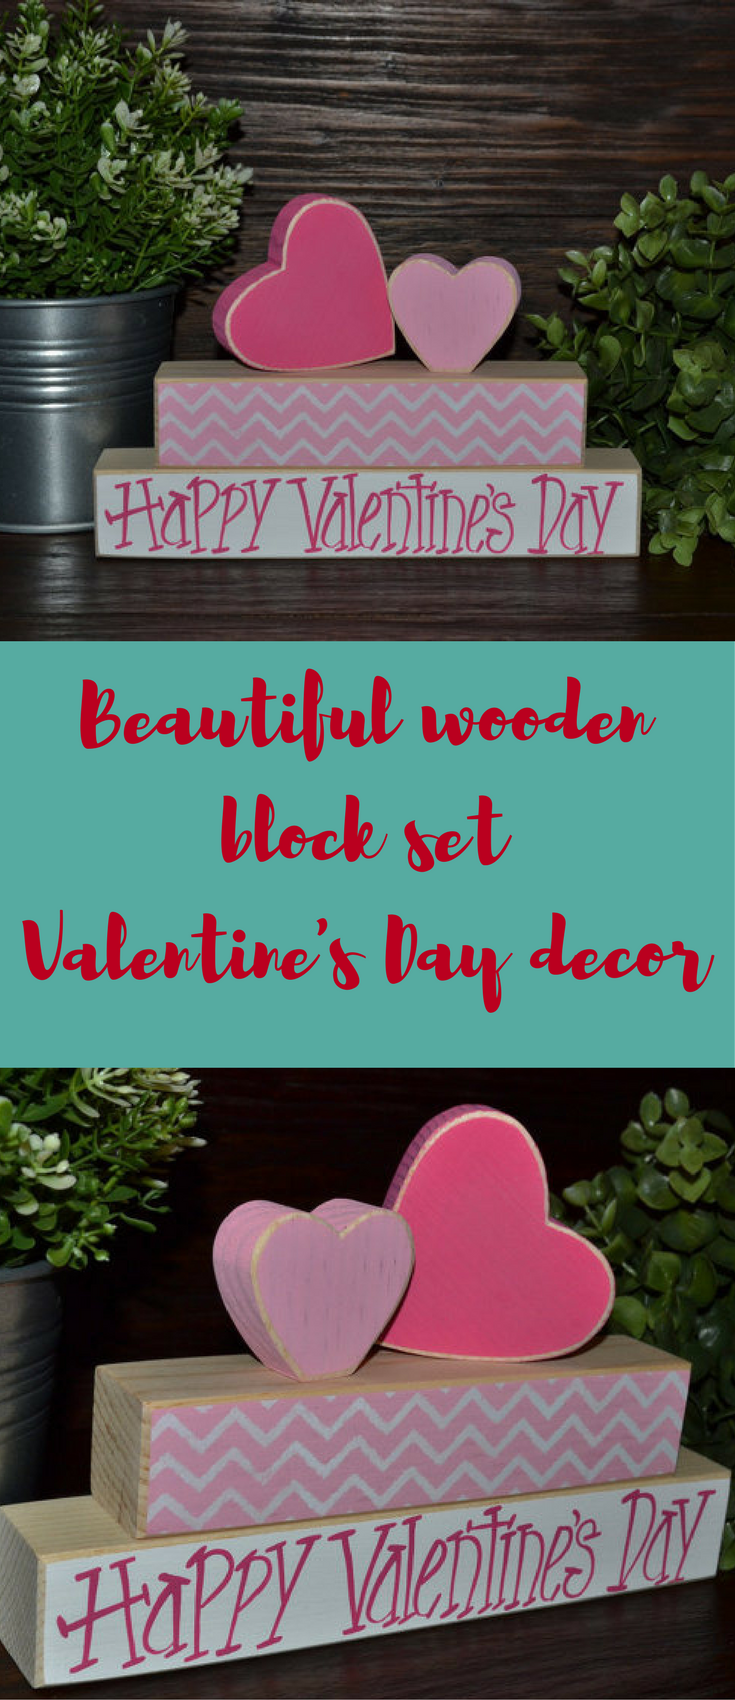 Enjoy the Beauty of Valentines Day Decoration Ideas